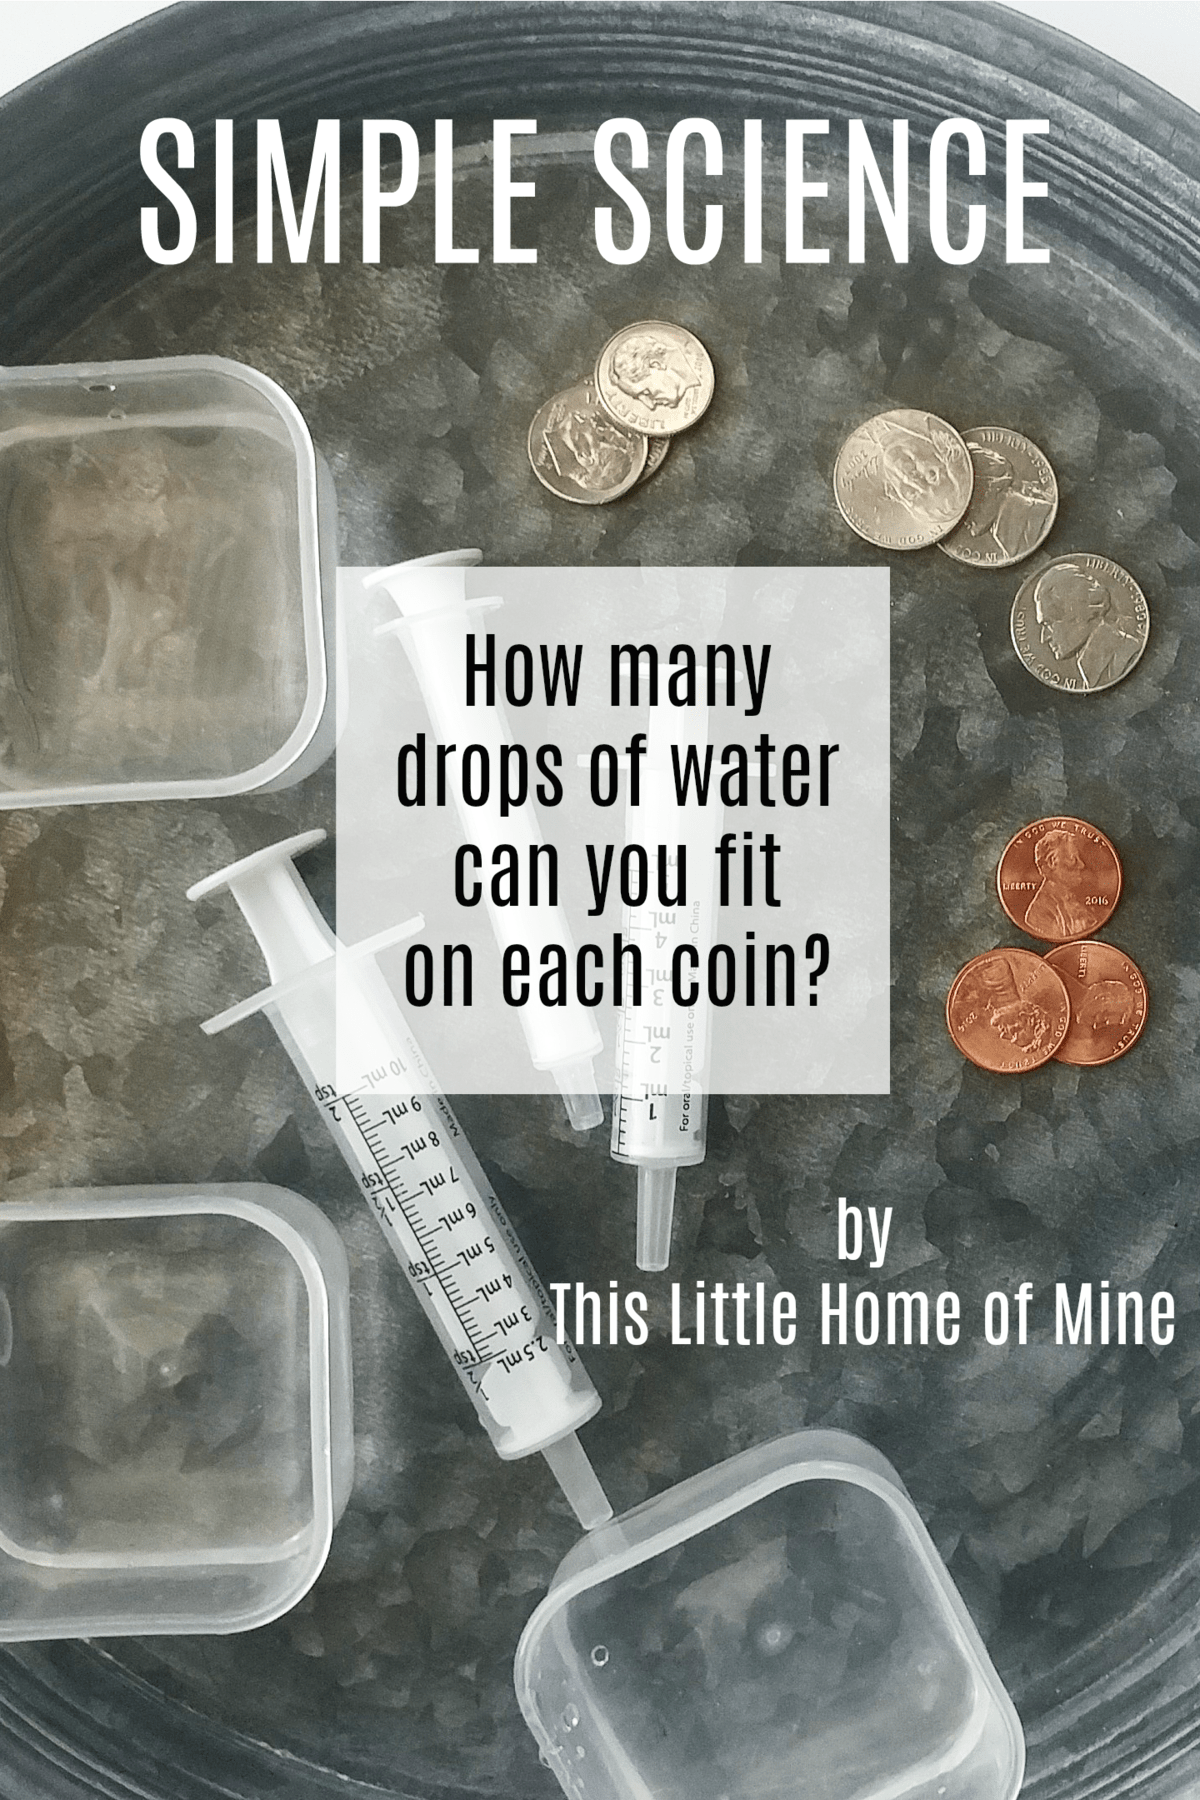 Simple Science: Drops of Water on a Coin